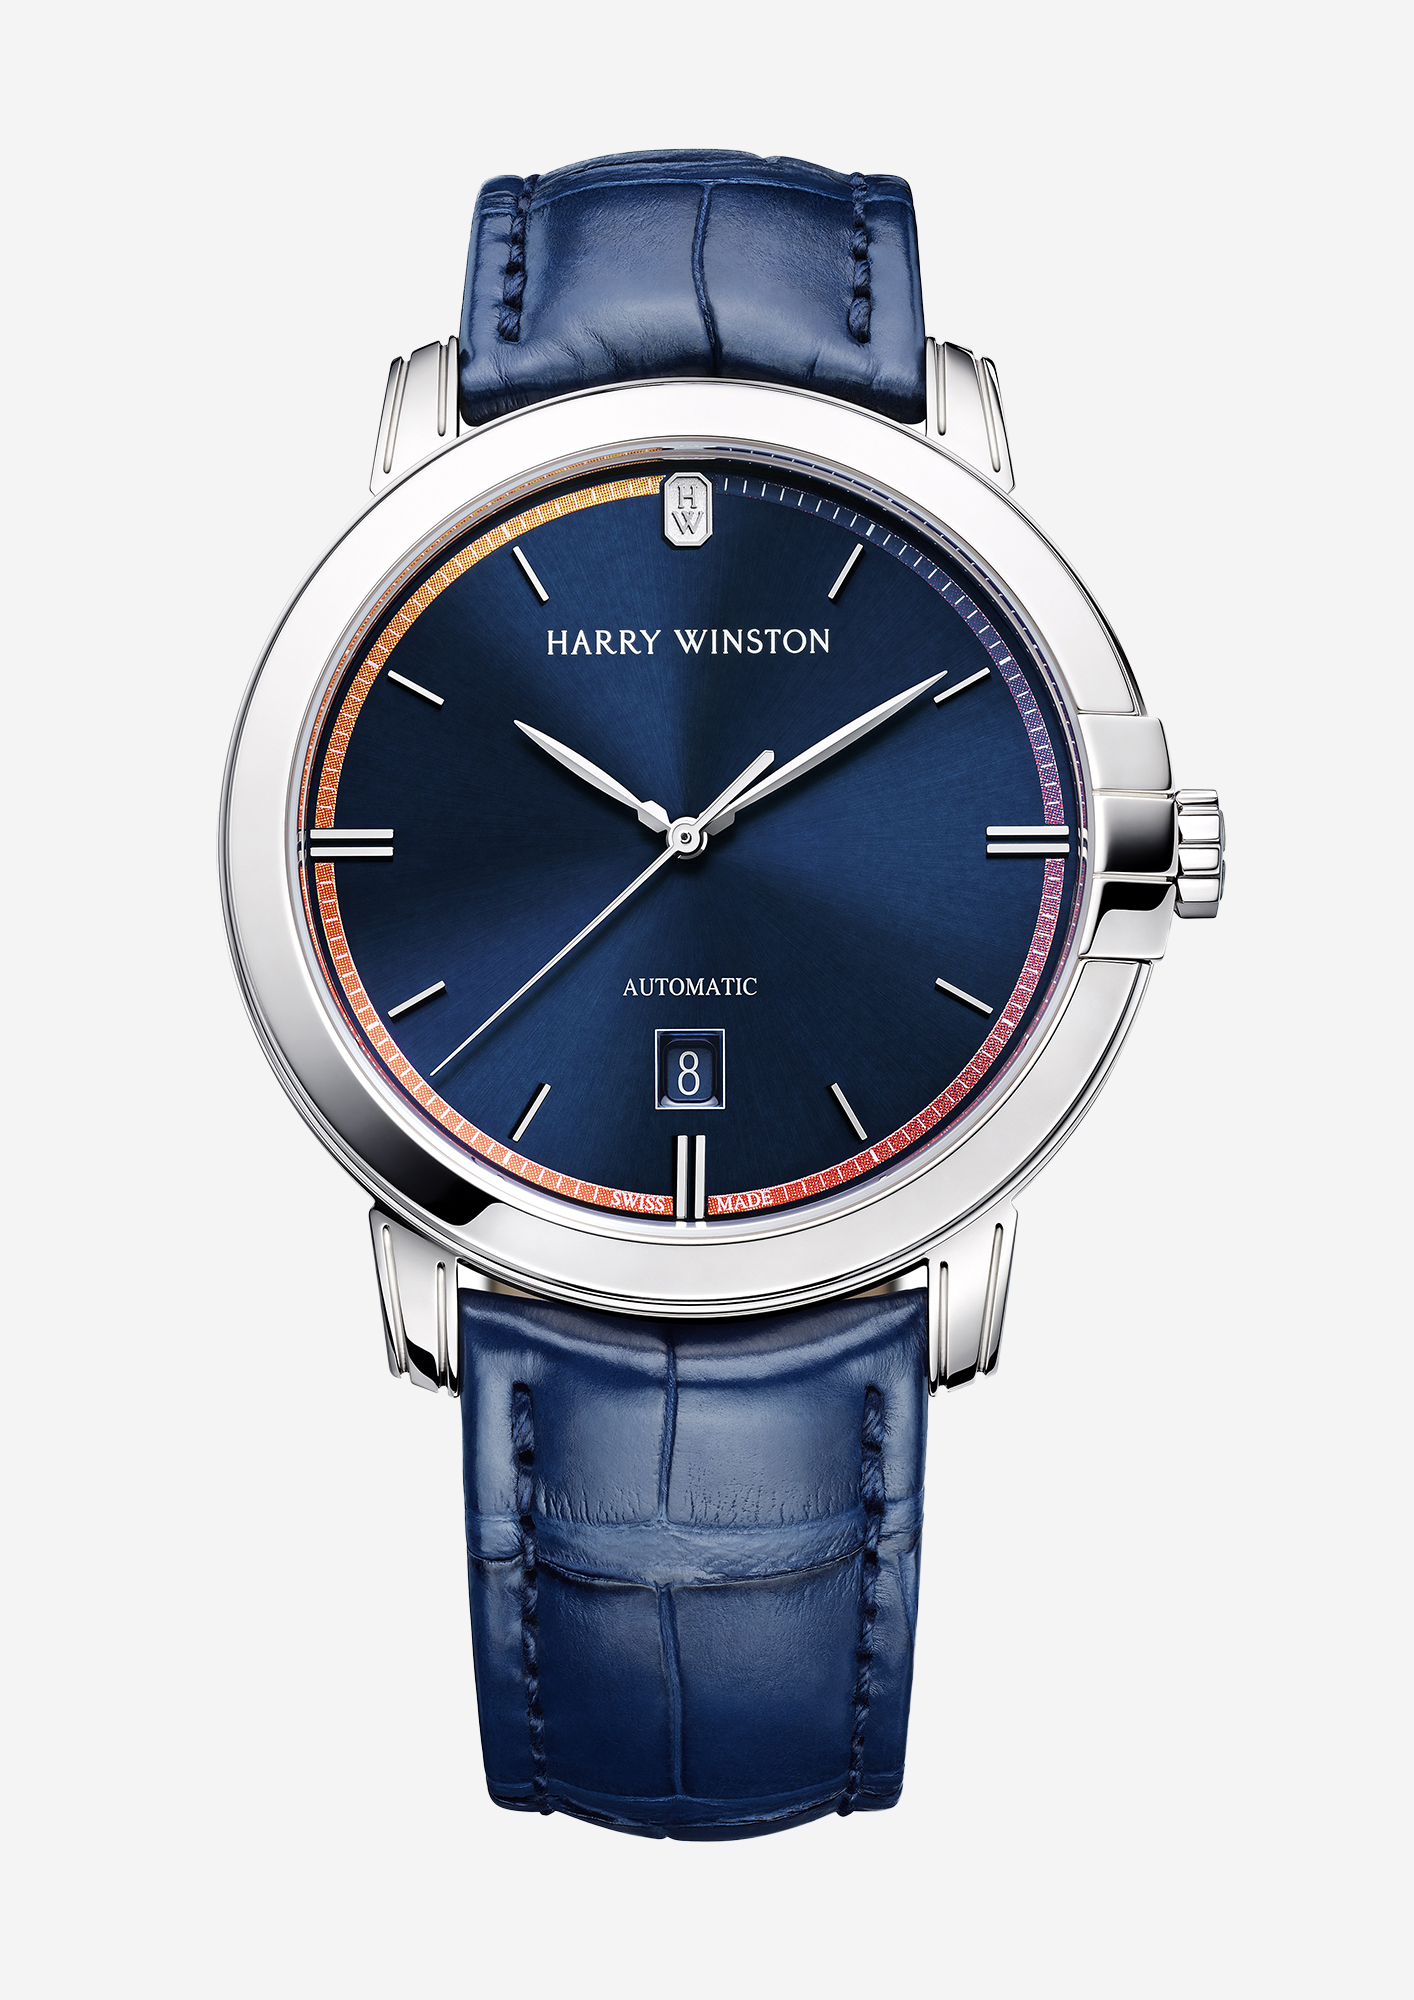 Sales of this Harry Winston timepiece go towards AIDS research